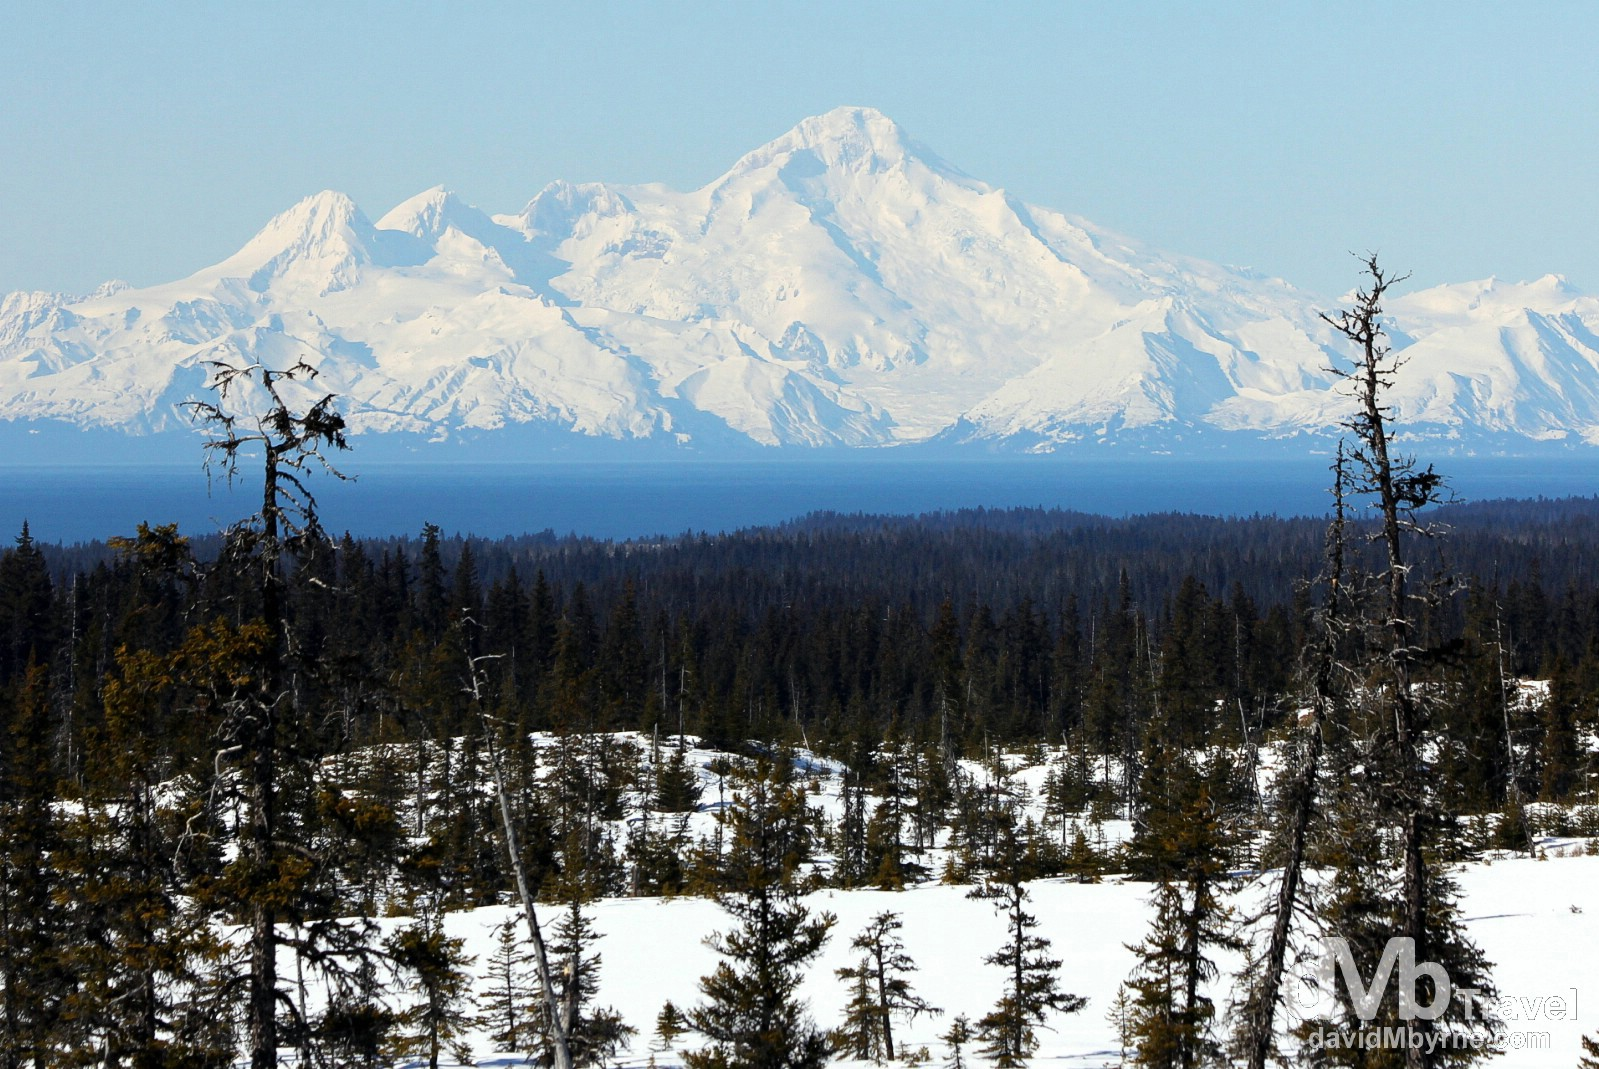 Mount Redoubt as seen from Skyline Drive in Homer, Alaska, USA. March 17th 2013.